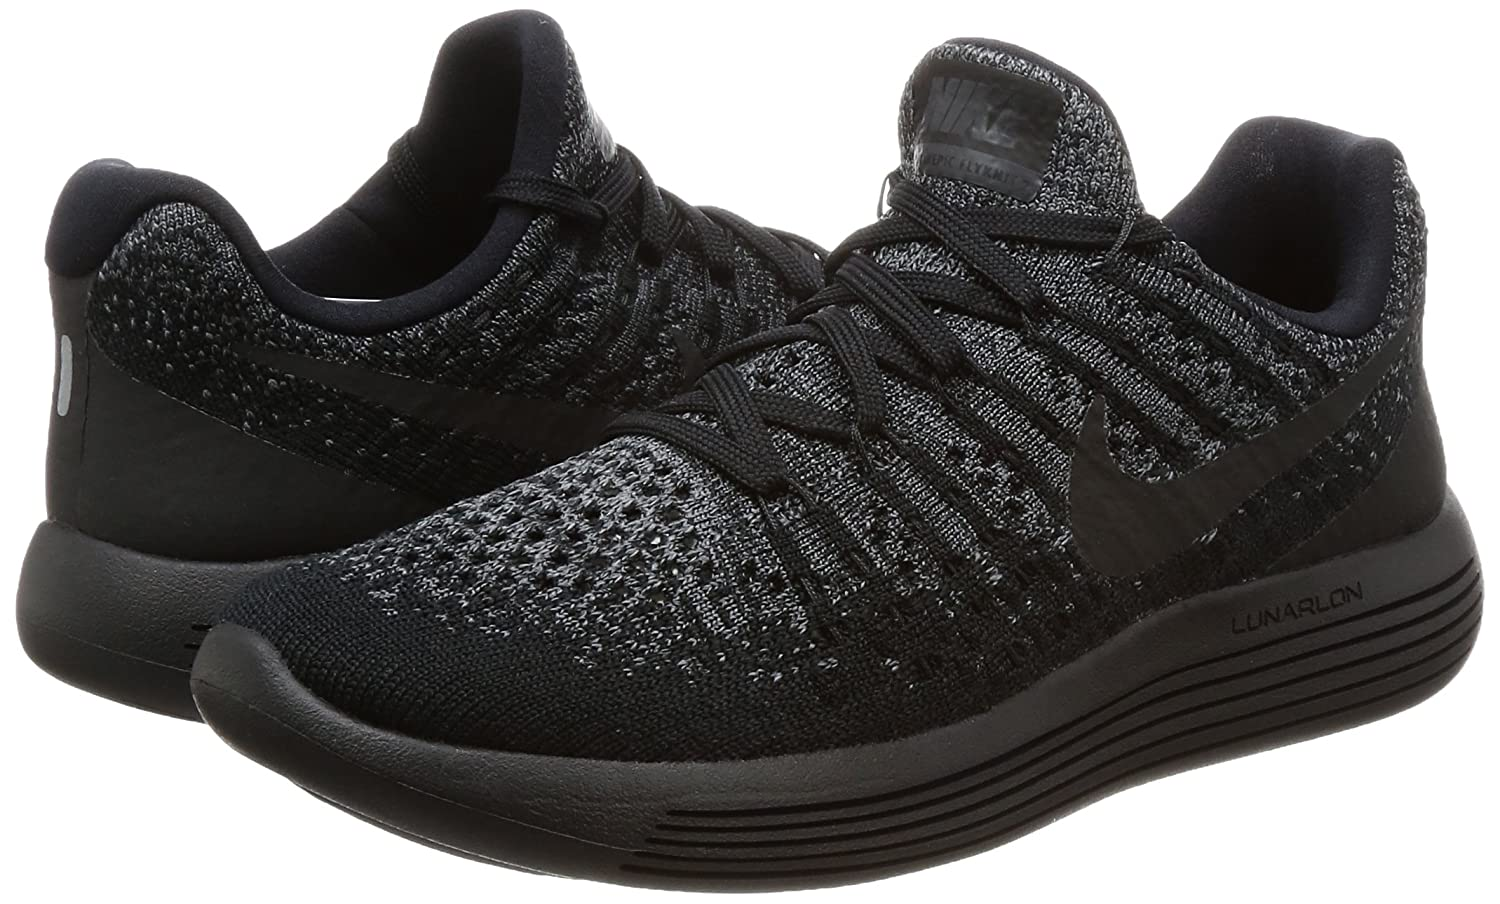 NIKE Women's Lunarepic Low B07468CYLX Flyknit 2 Running Shoe B07468CYLX Low 10.5 B(M) US|Black/Dark Grey/Racer Blue/Black 6e20cc